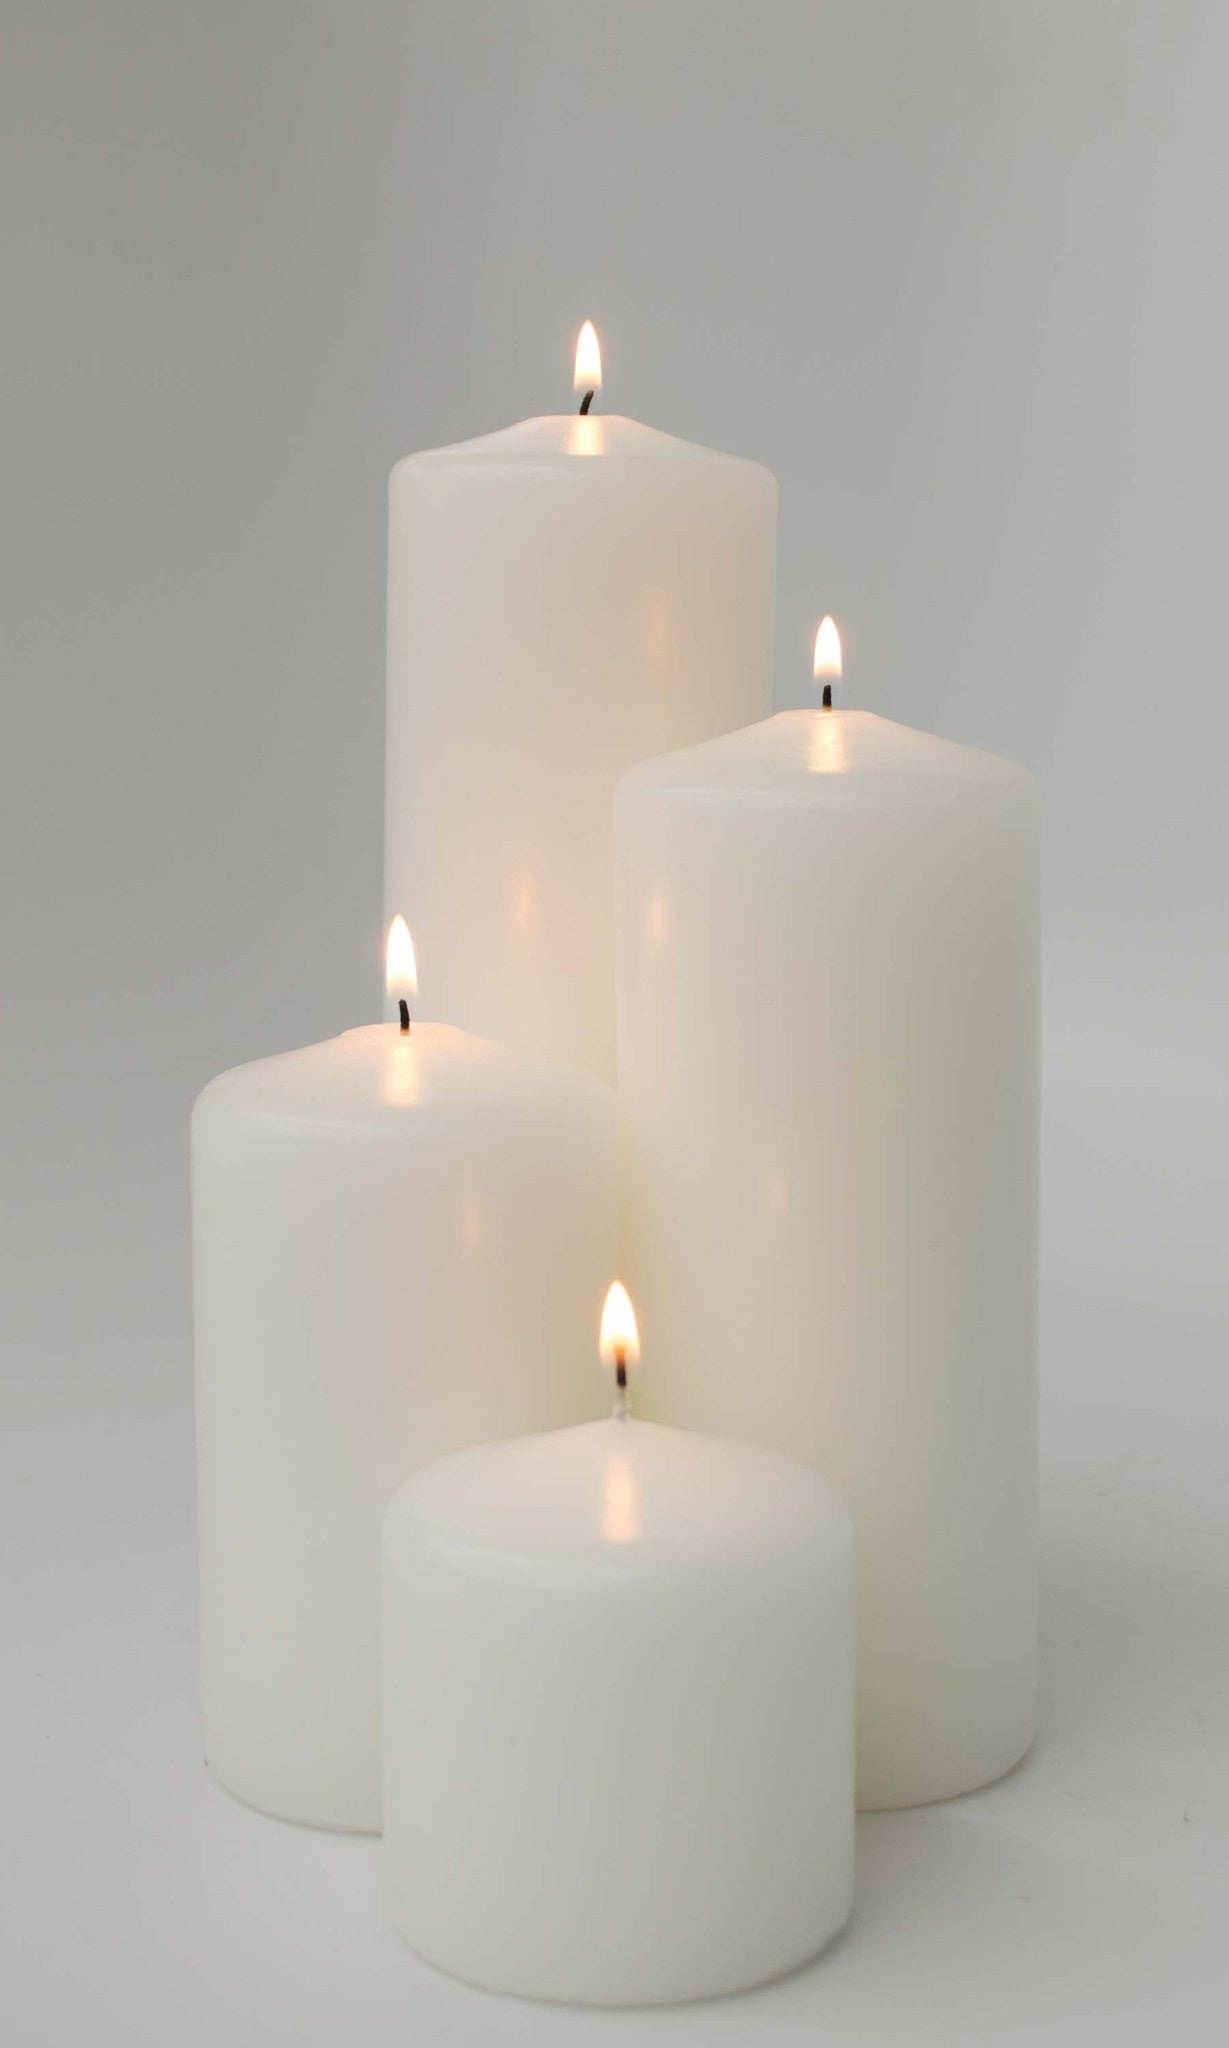 3x6 Unscented White Pillar Candle - Candlemart.com - 2